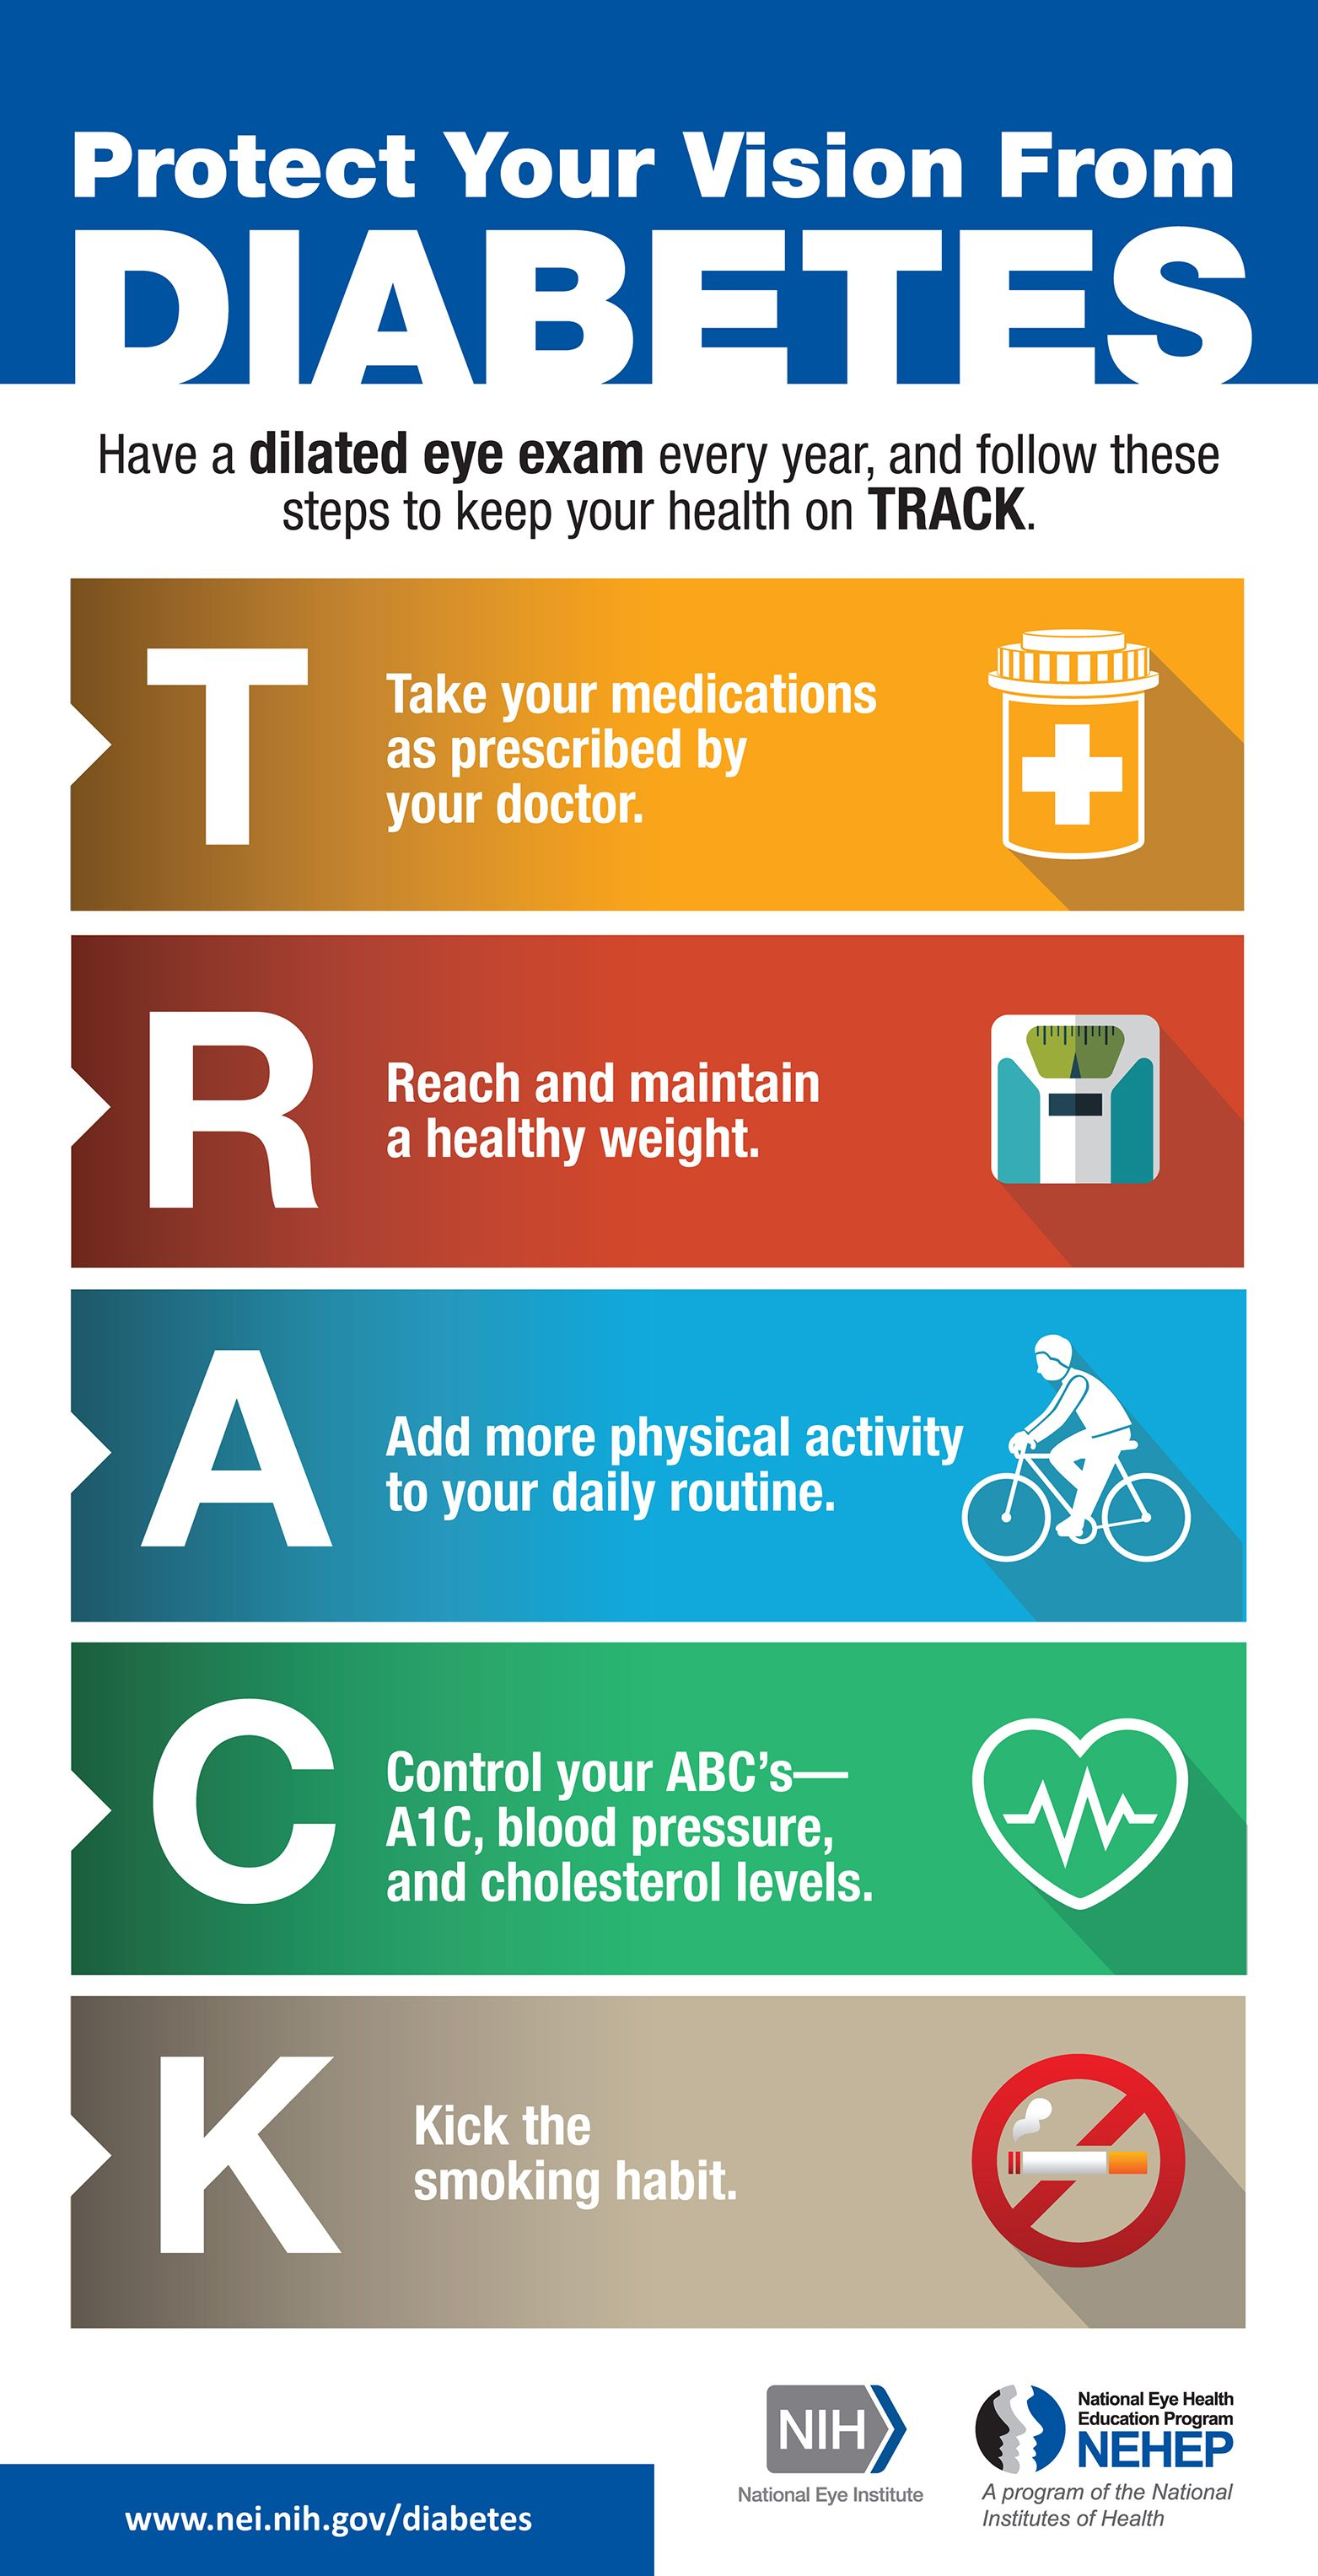 Protect Your Vision From Diabetes Track Infographic